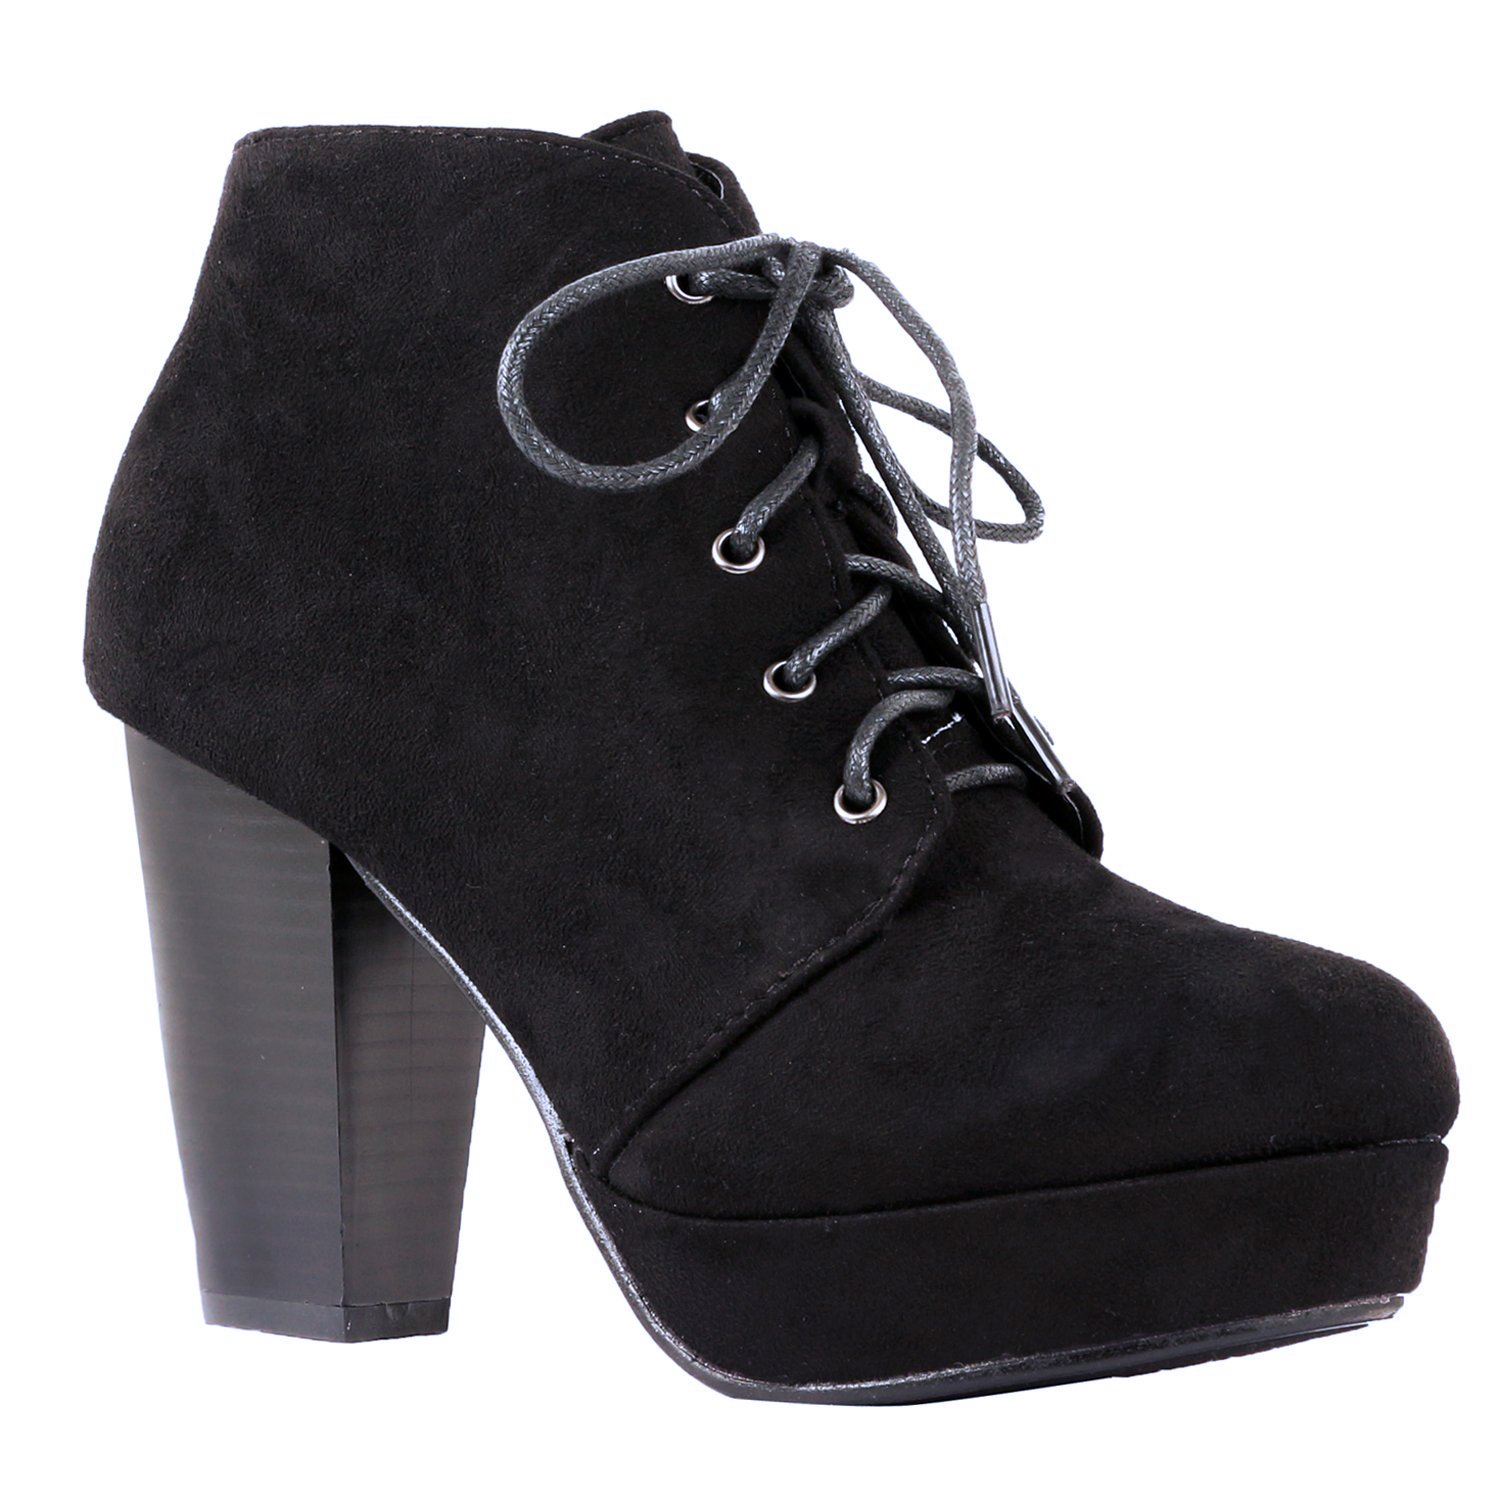 ShoBeautiful Women's Ankle Boots Lace up Block Chunky Heel Dress Booties Comfort Party Shoes CM86 Black 8